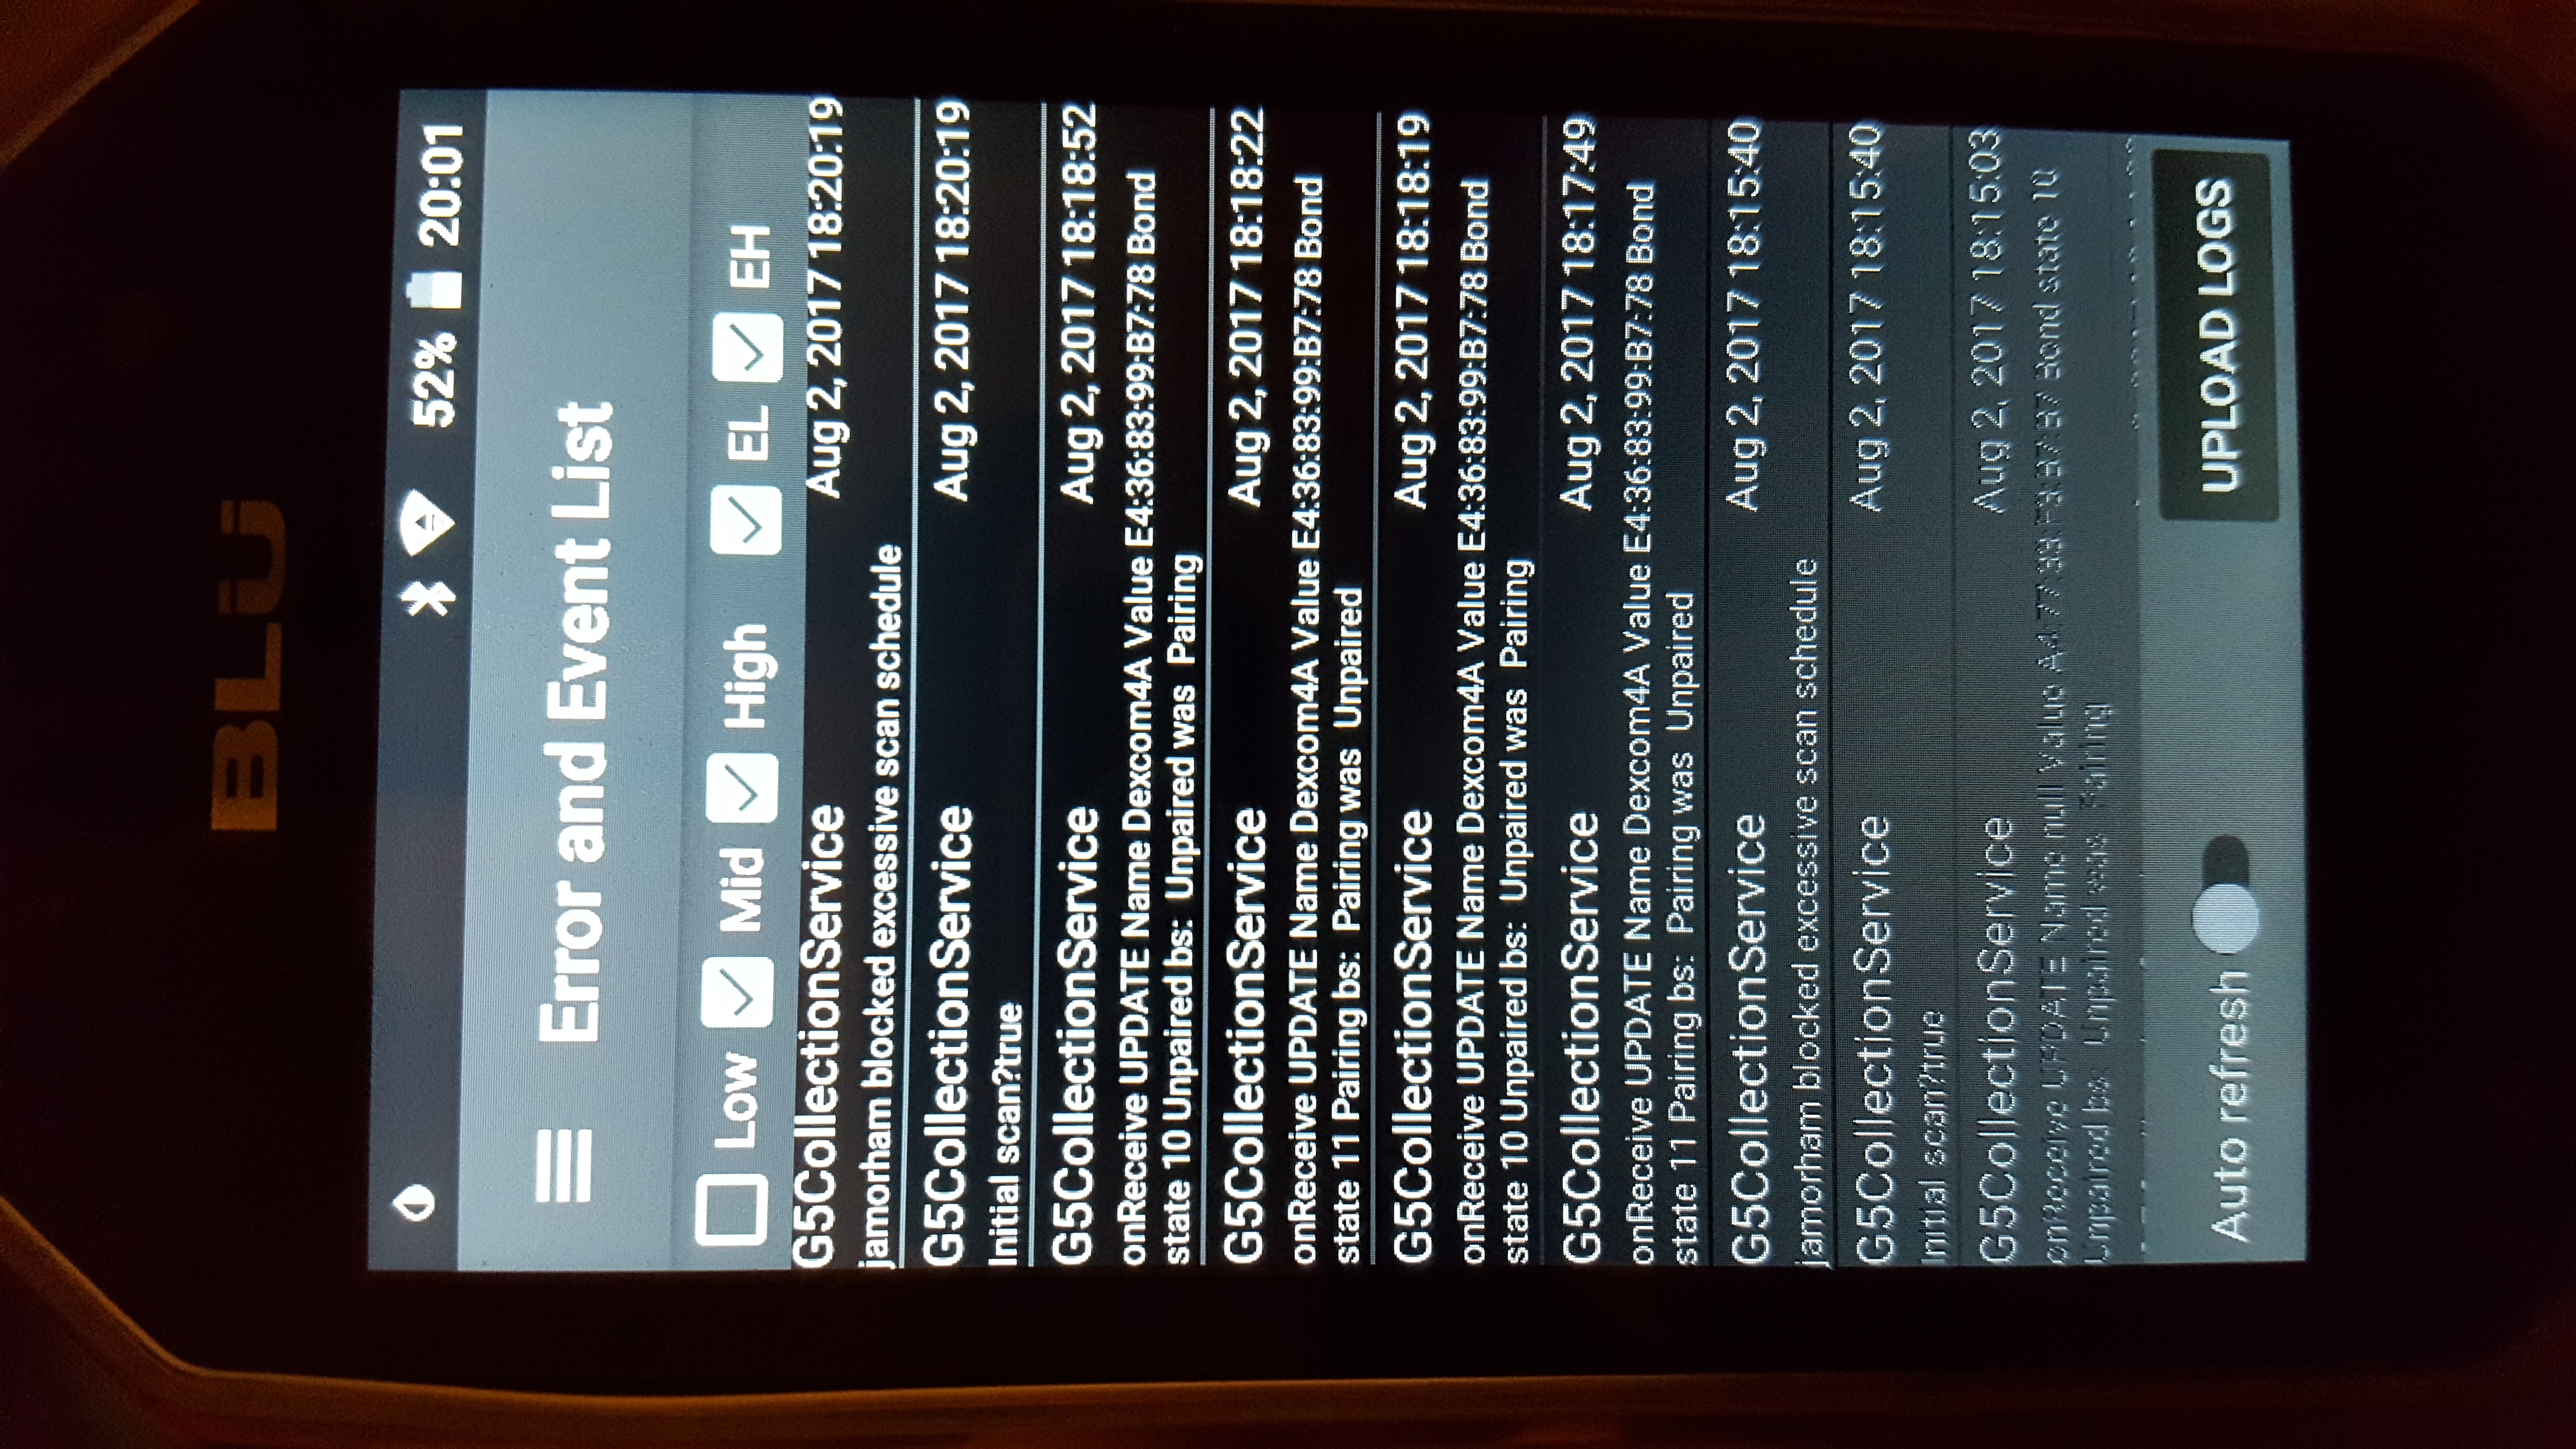 G5 Experimental] Transmitter not connecting to phone · Issue